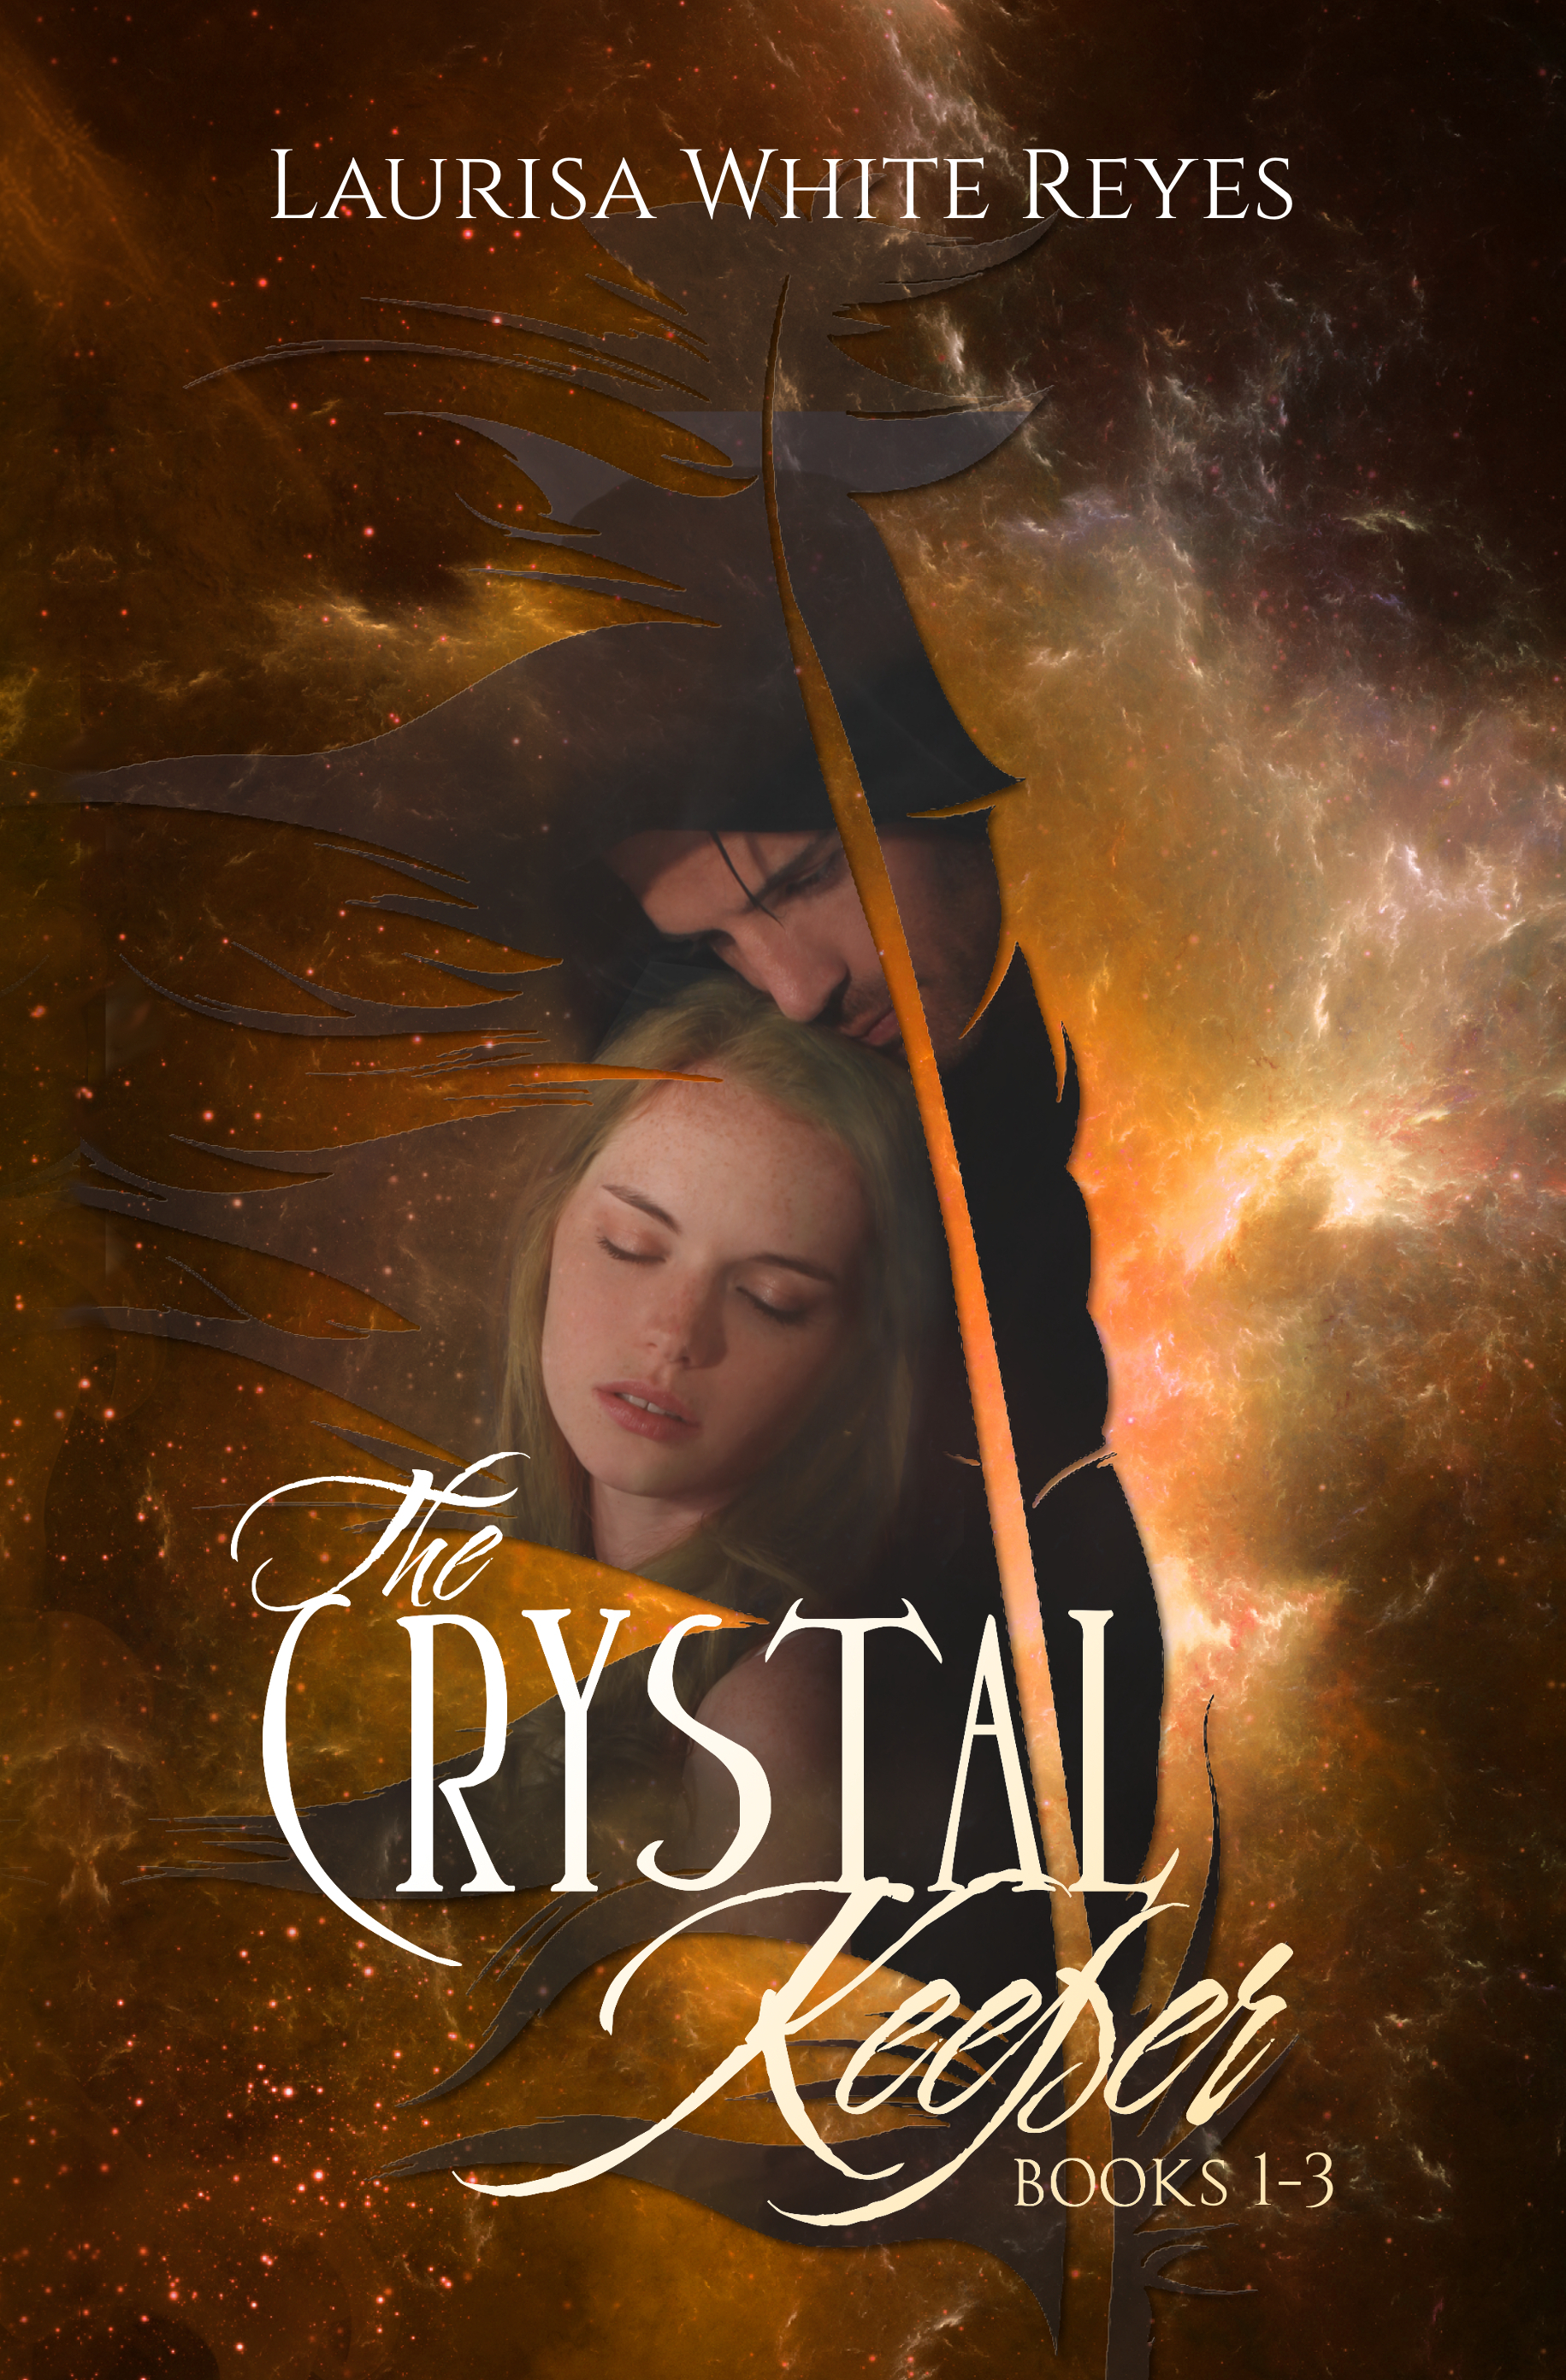 The Crystal Keeper Omnibus